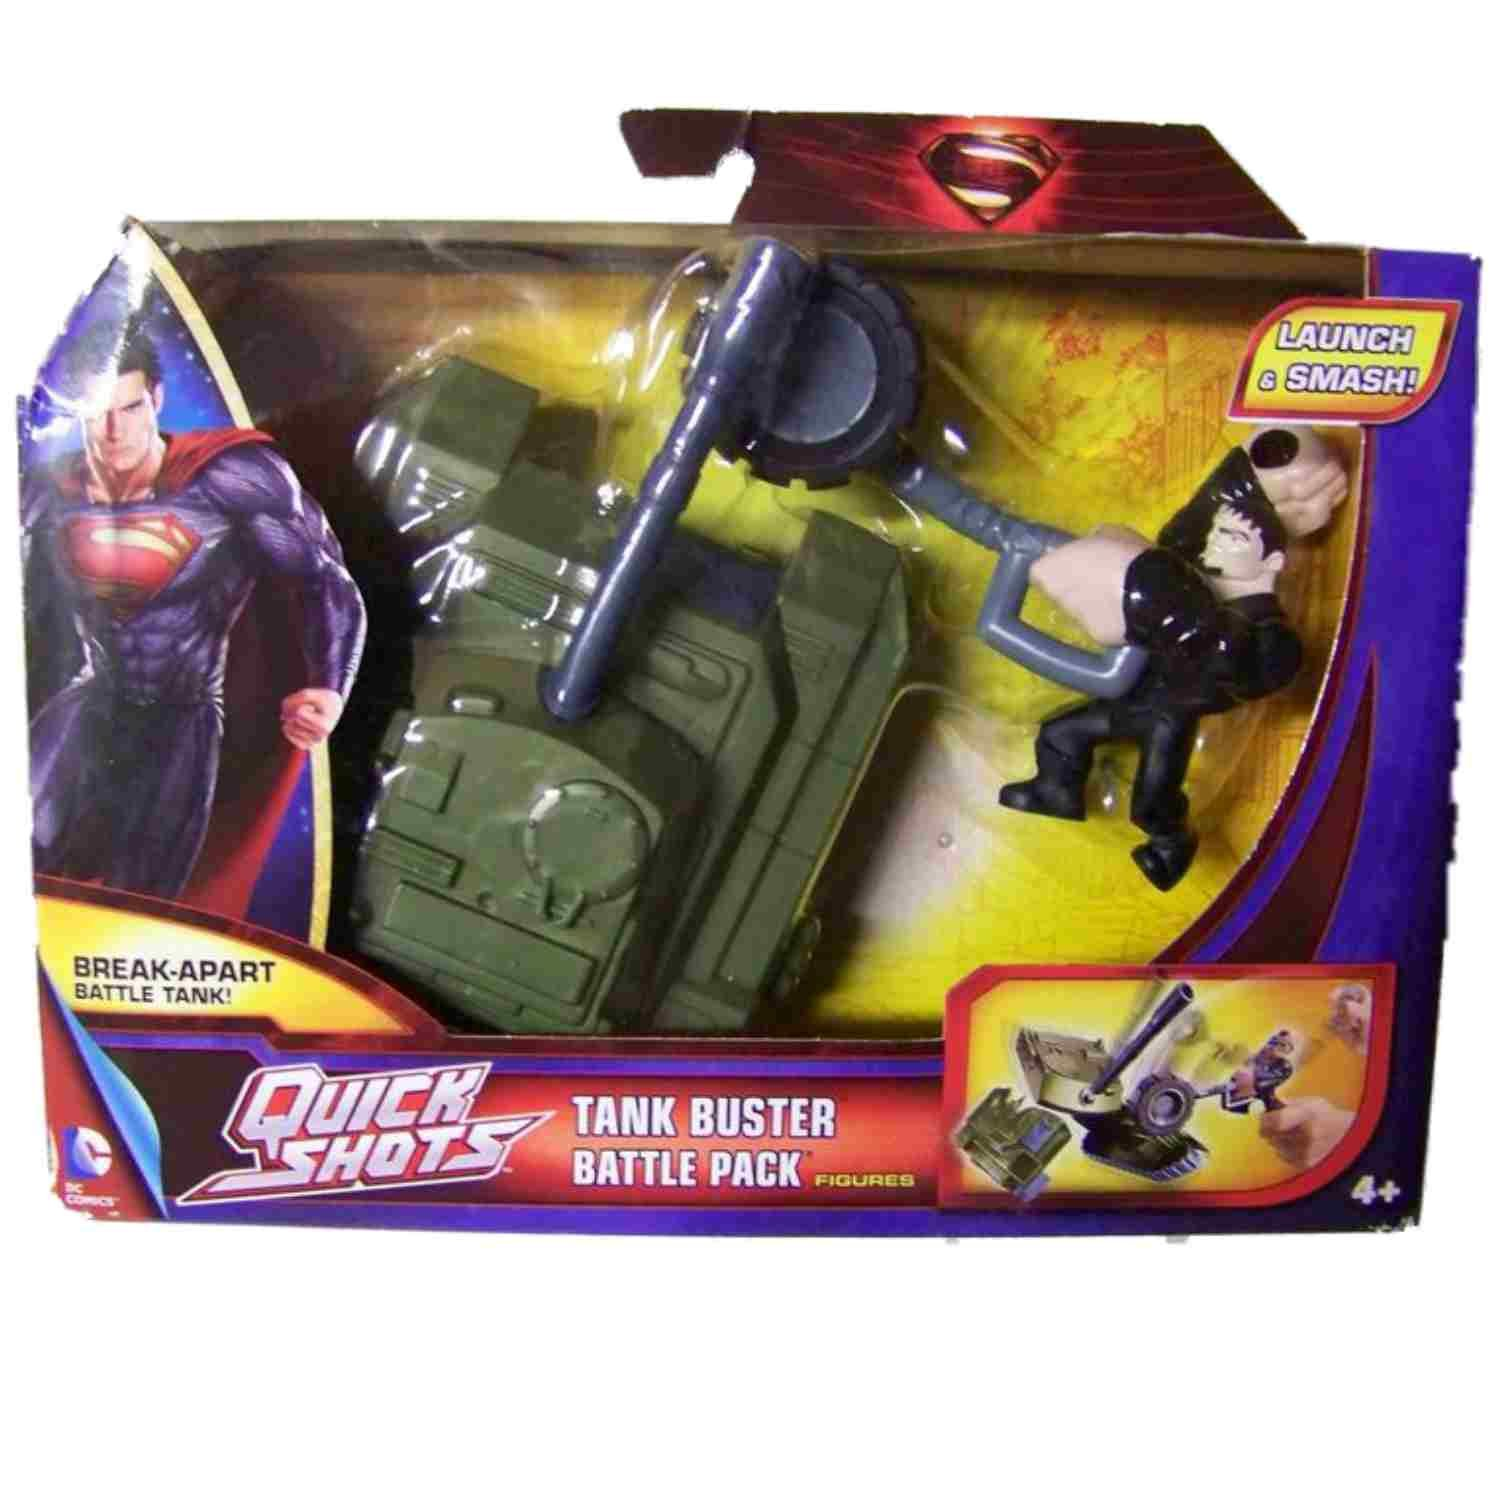 Superman Man of Steel Quick Shots Launch /& Attack Battle Pack 2013 for sale online